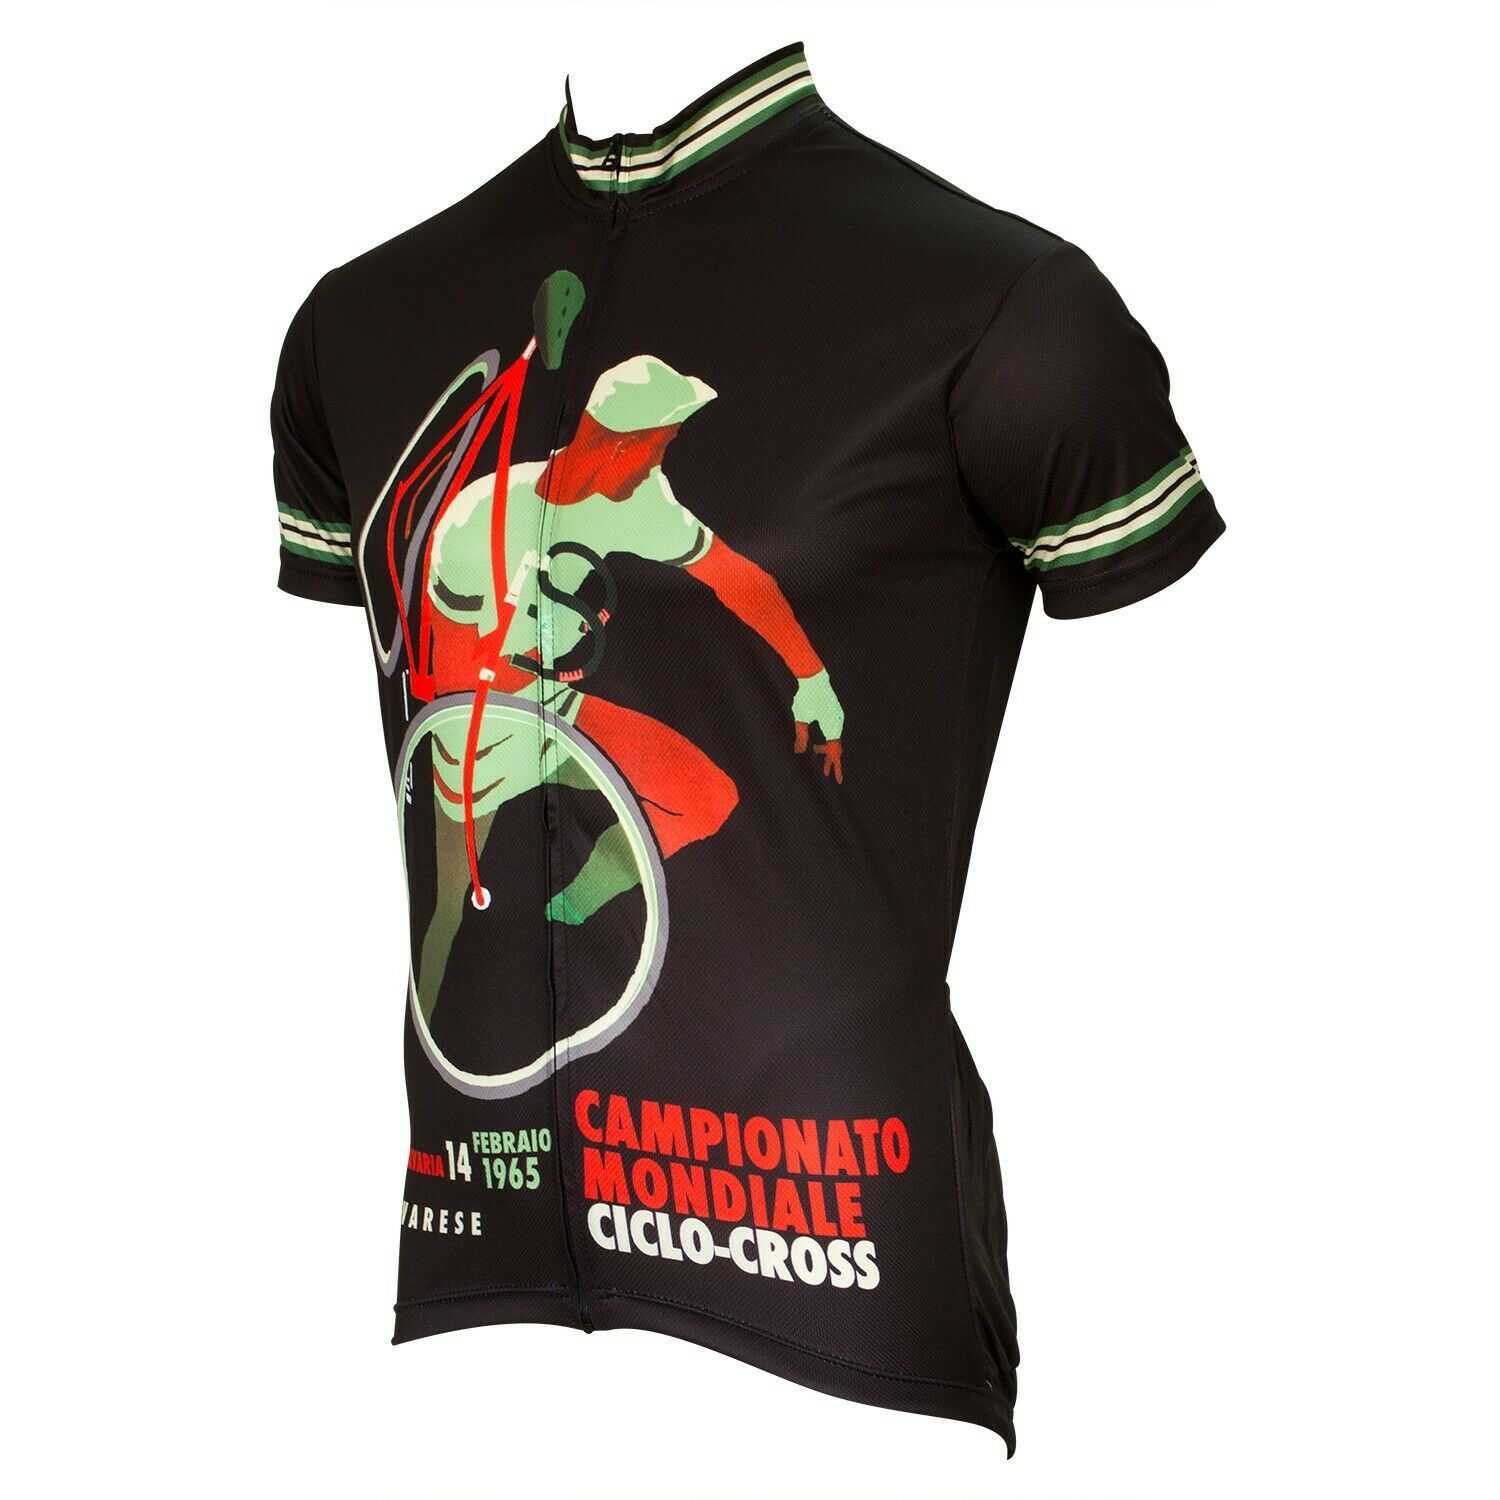 World Ciclo Cross World  Championship Cycling Jersey by Retro Size Medium  buy cheap new